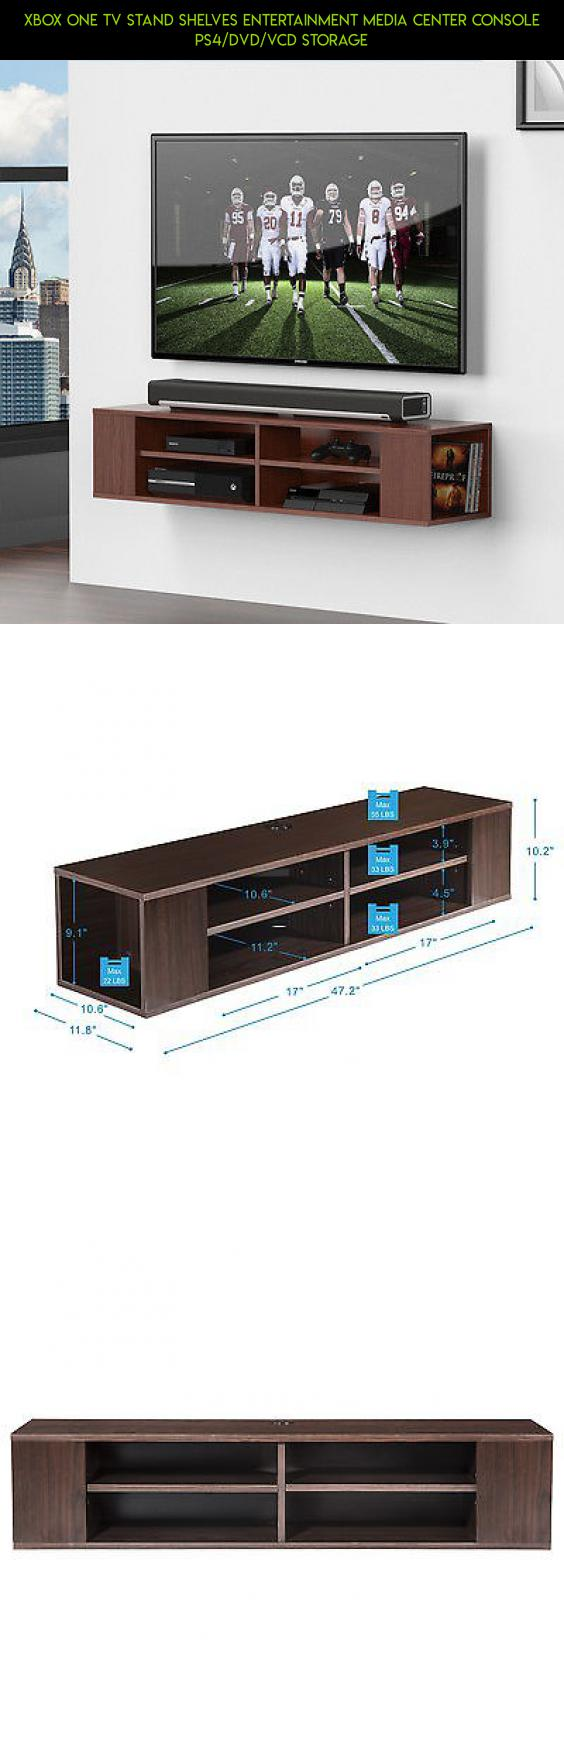 Xbox one TV Stand Shelves Entertainment Media Center Console PS4/DVD ...